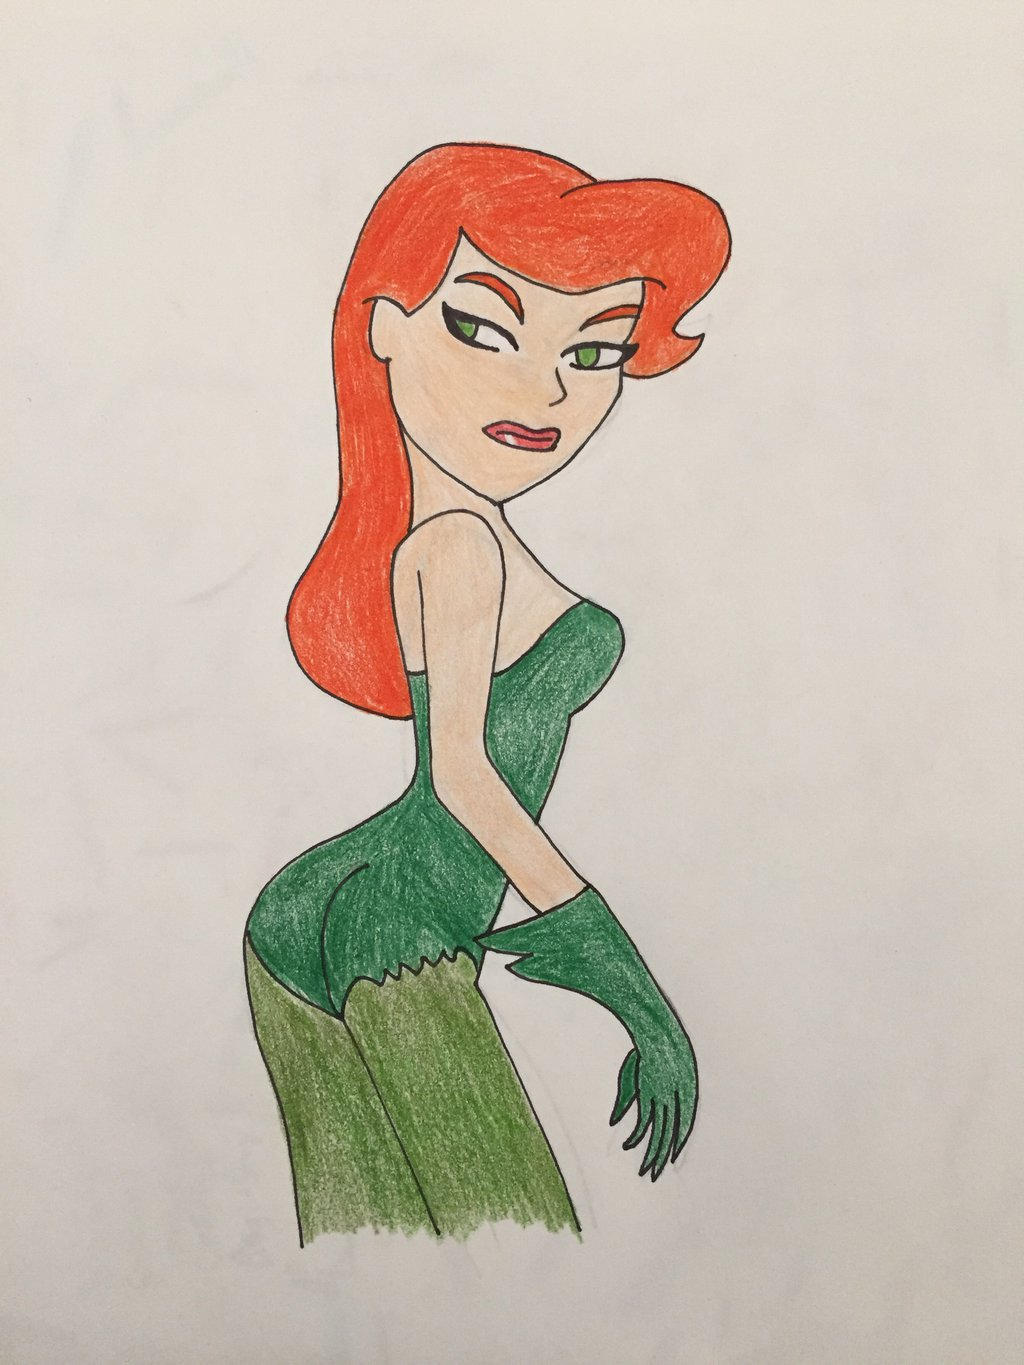 Poison Ivy BTAS drawing 2 by IronBatMaiden91 on DeviantArt